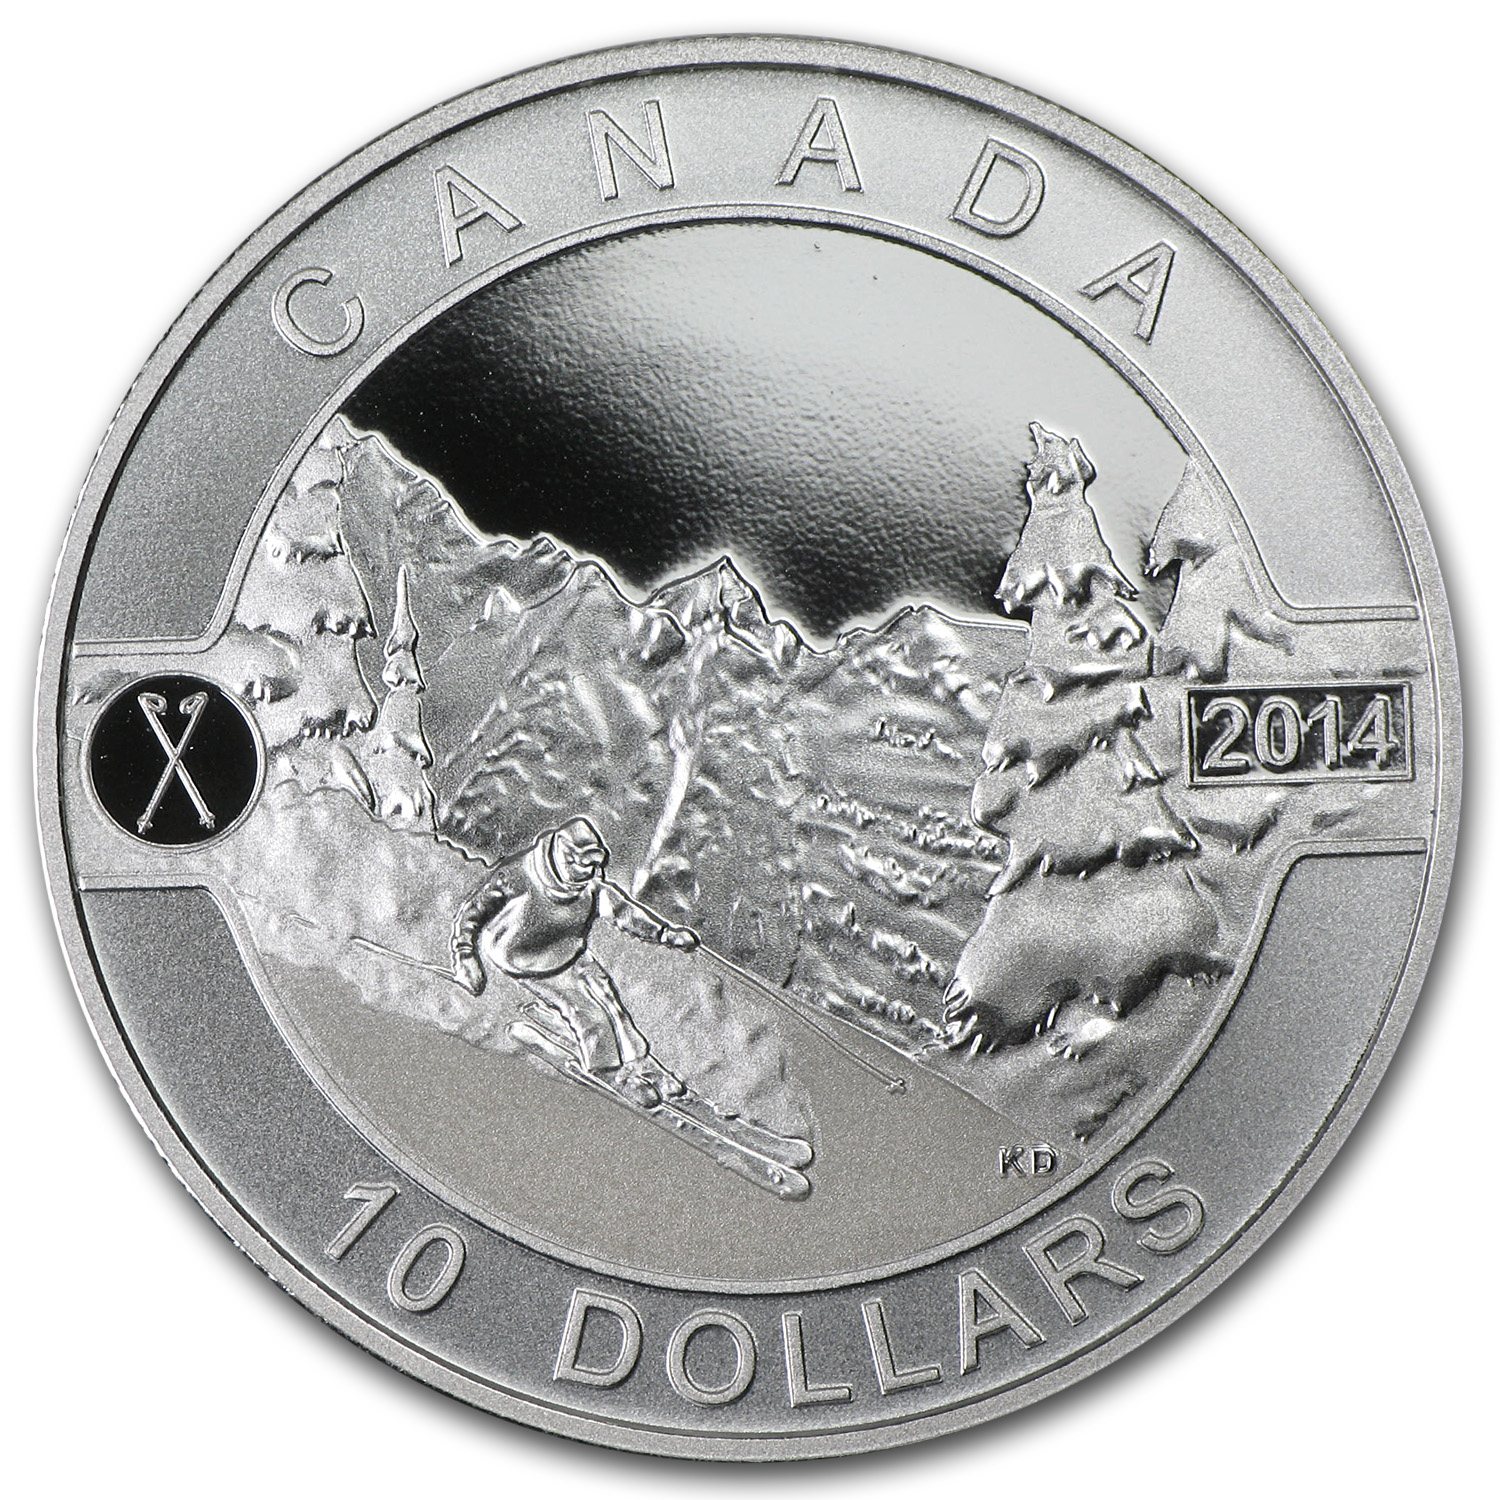 2014 1/2 oz Silver Canadian $10 - Skiing Canada's Slopes